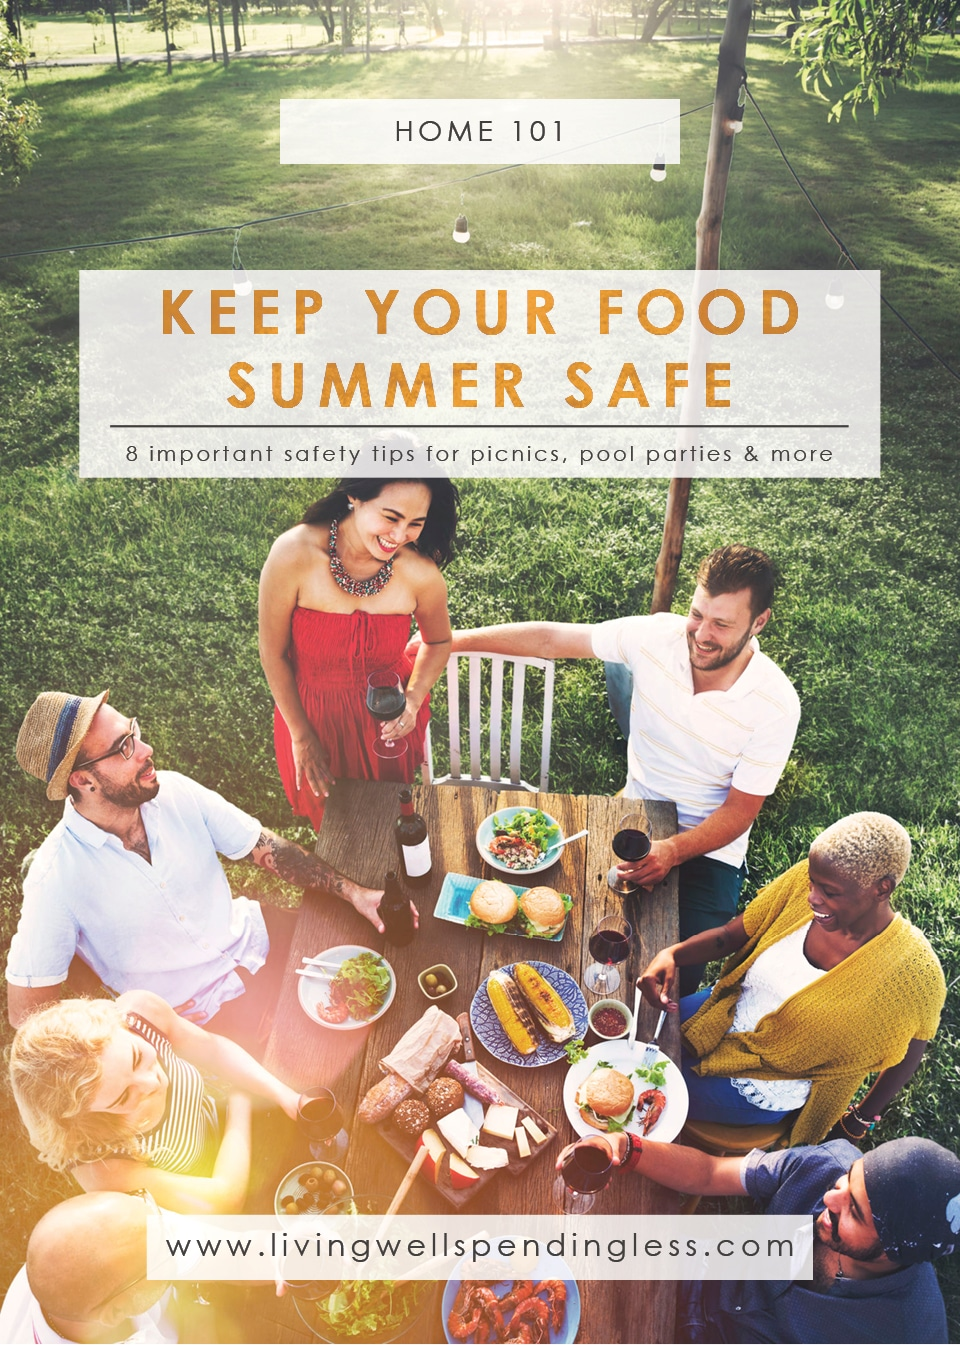 Food Safety Tips for Summer | Summer Party Tips | Summer Food Safety